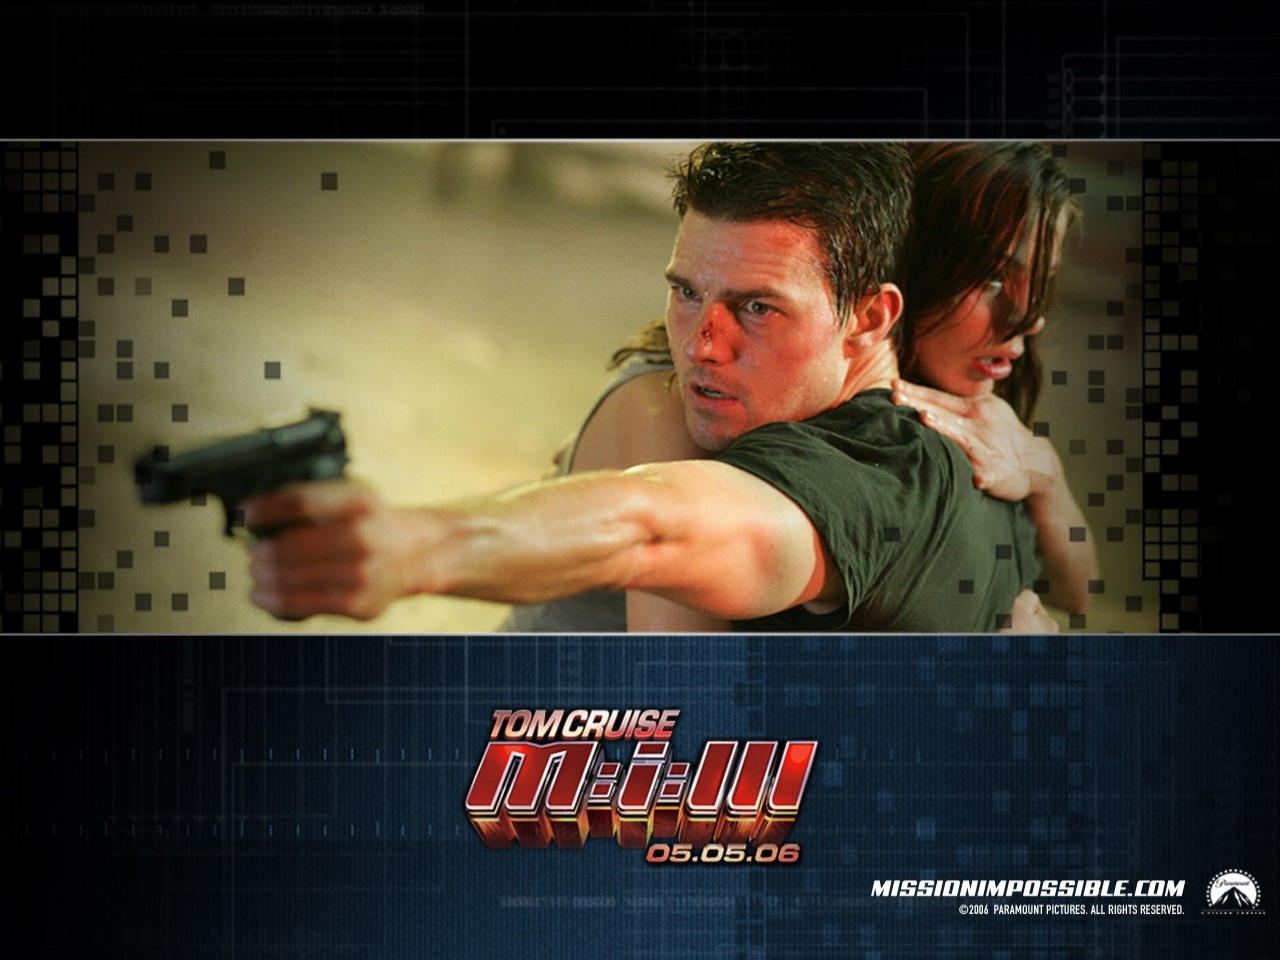 Tom Cruise in un wallpaper del film Mission: Impossible III